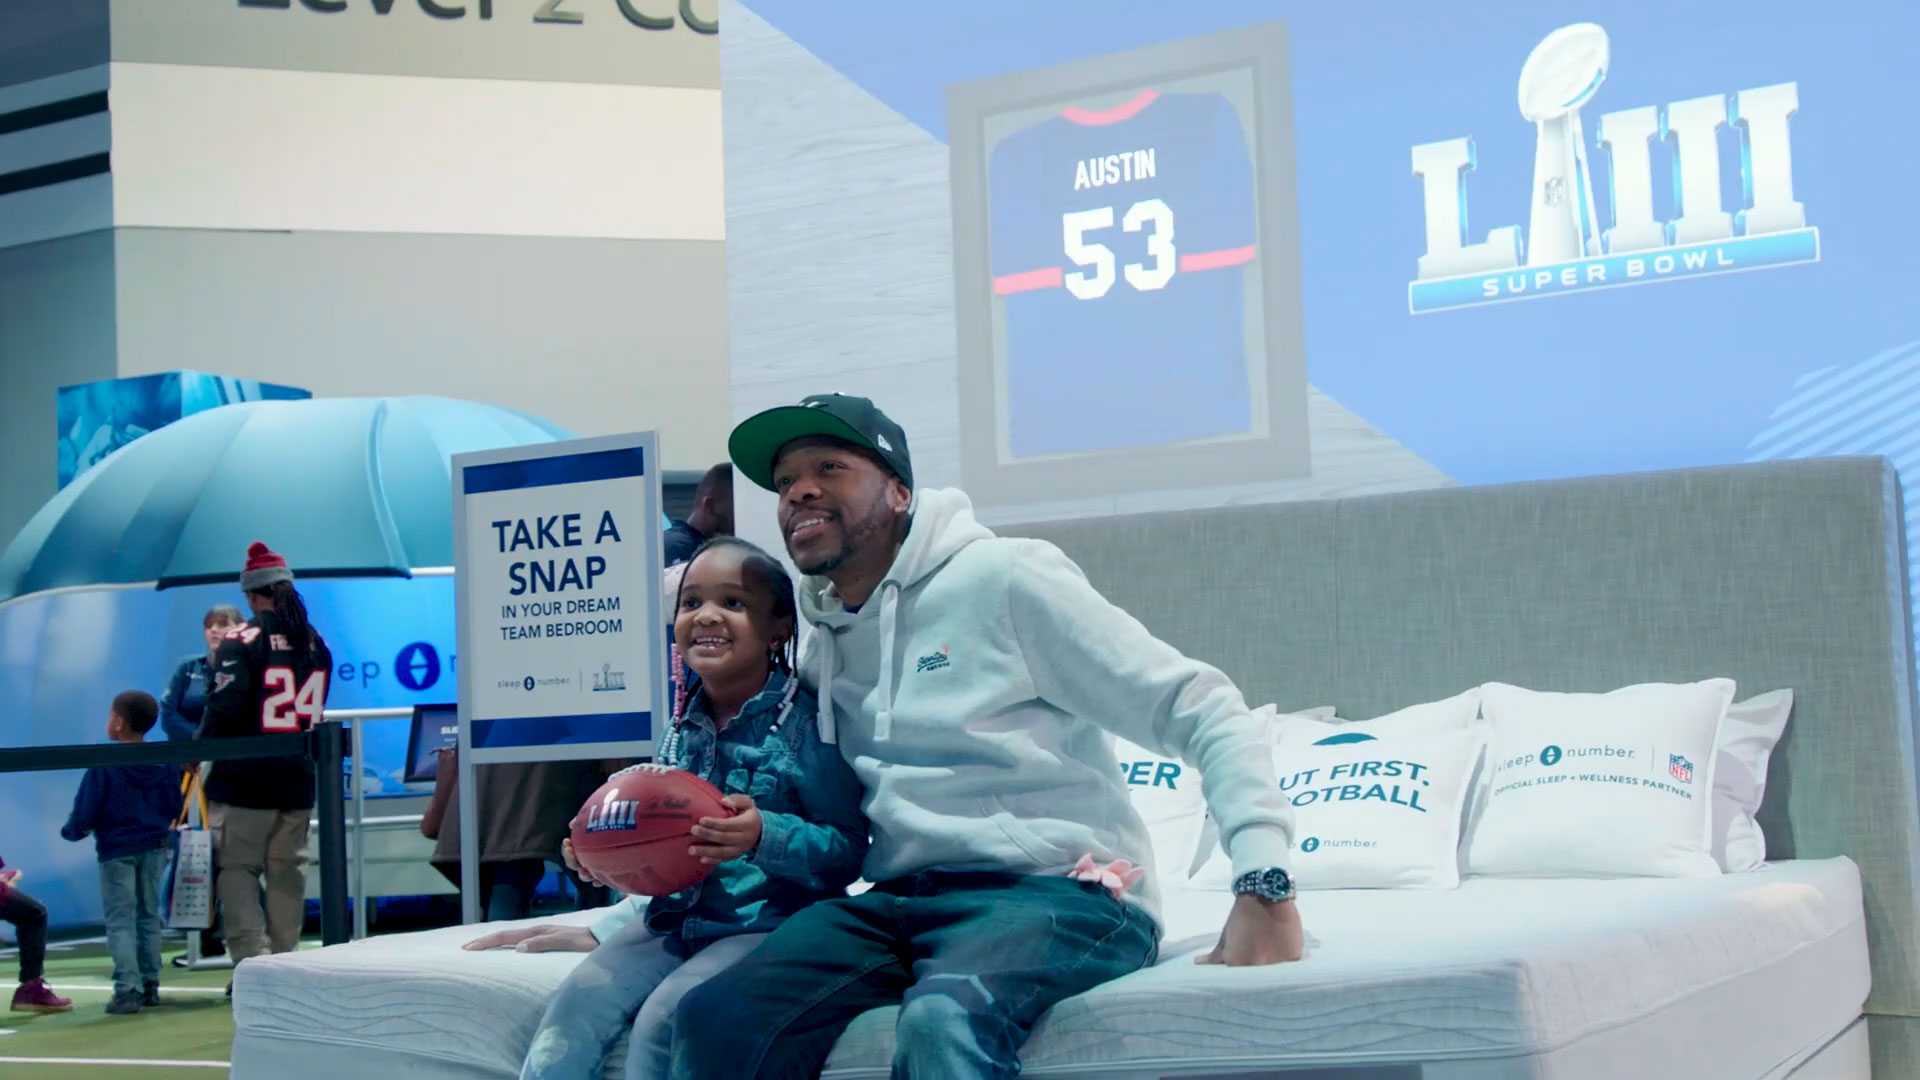 Man and daughter sitting on Sleep Number bed in front of NFL display